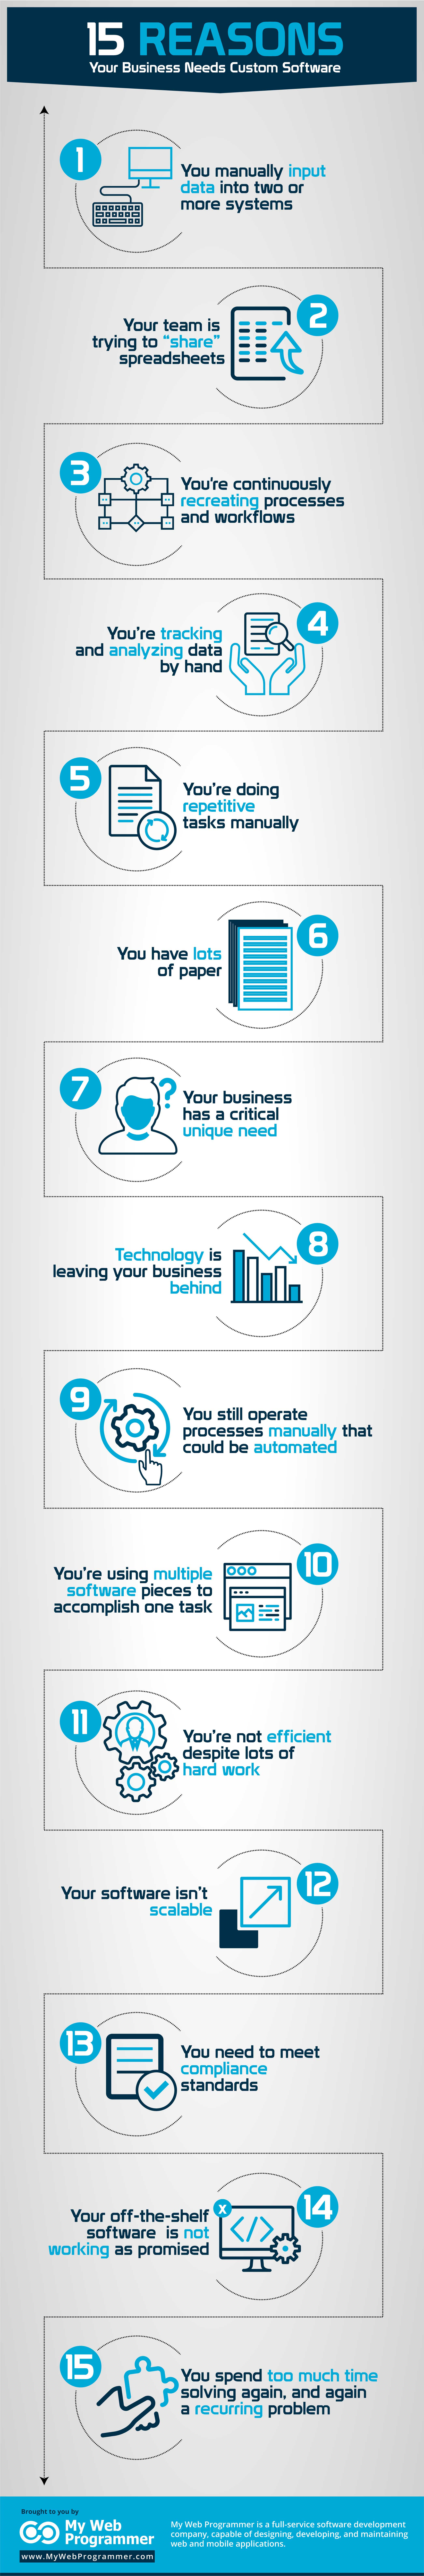 15 reasons your business needs custom software infographic